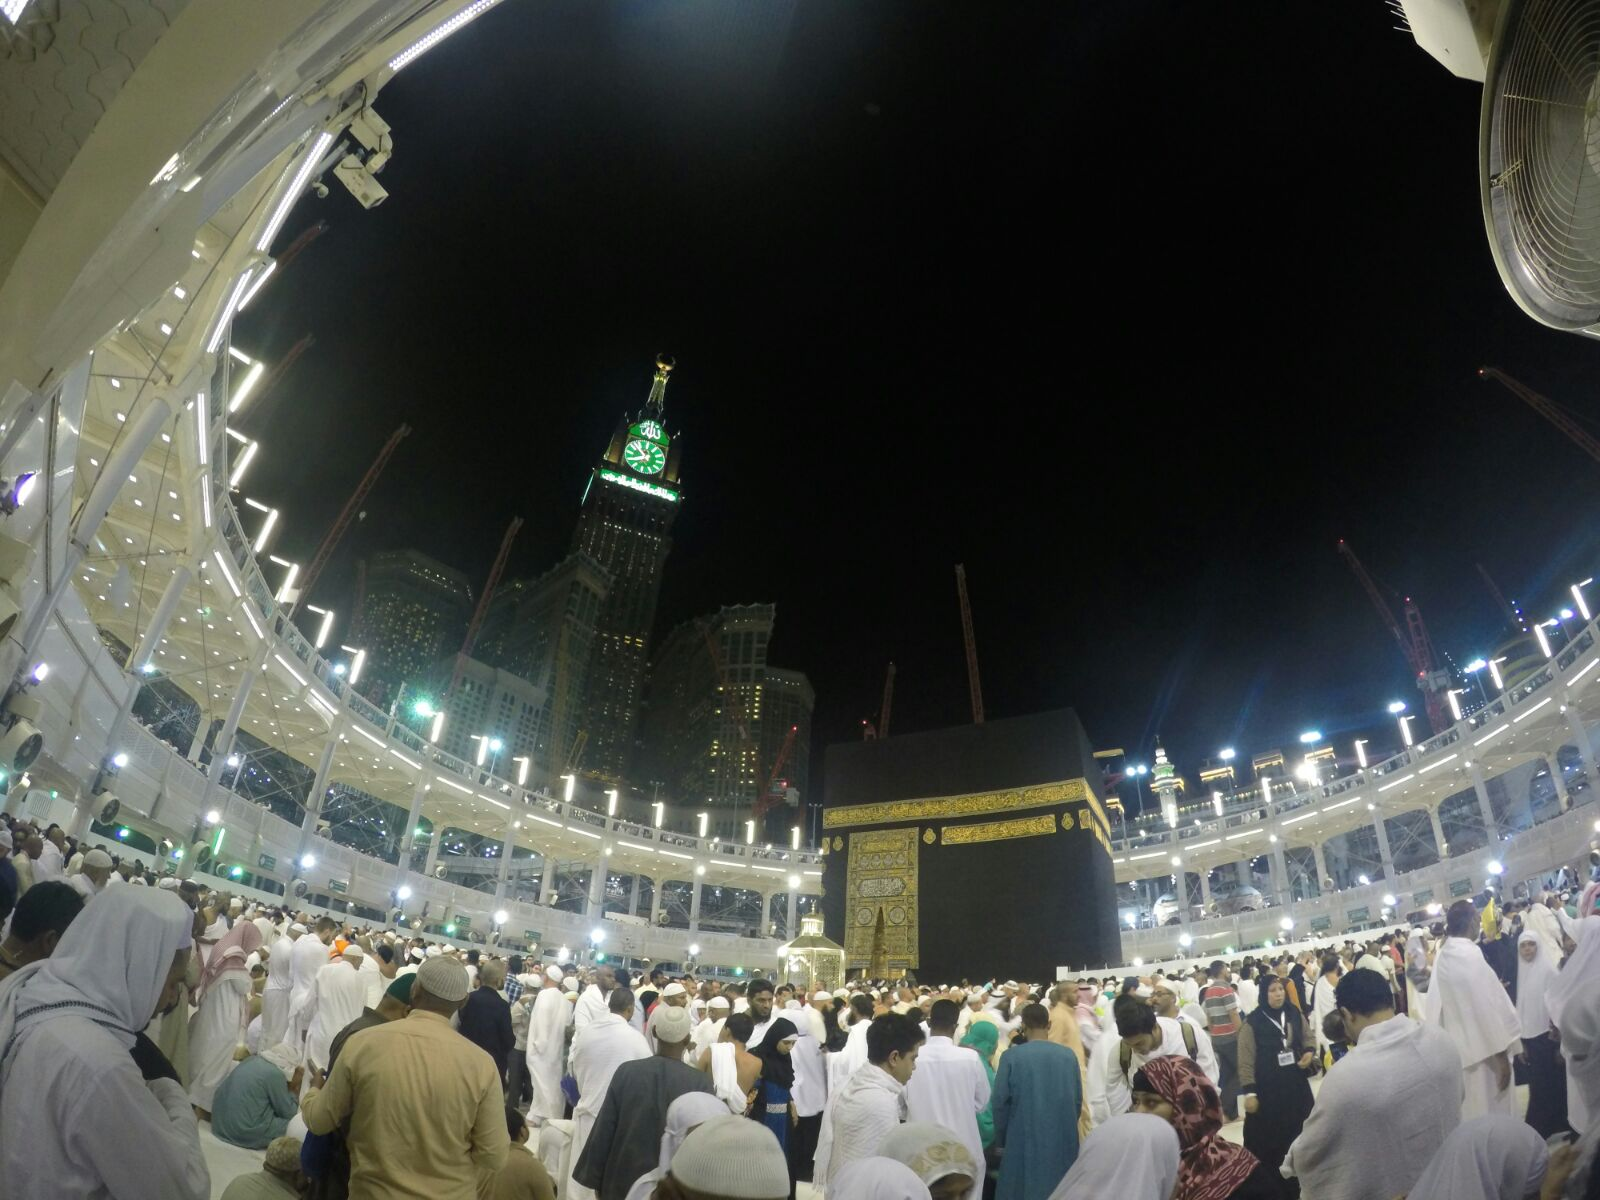 Hani sabri umrah hacks for ladies alhamdulillah a few days ago i got back home from an 11 day trip to the holy land of makkah and madinah it is true what they say it truly is a magical solutioingenieria Choice Image